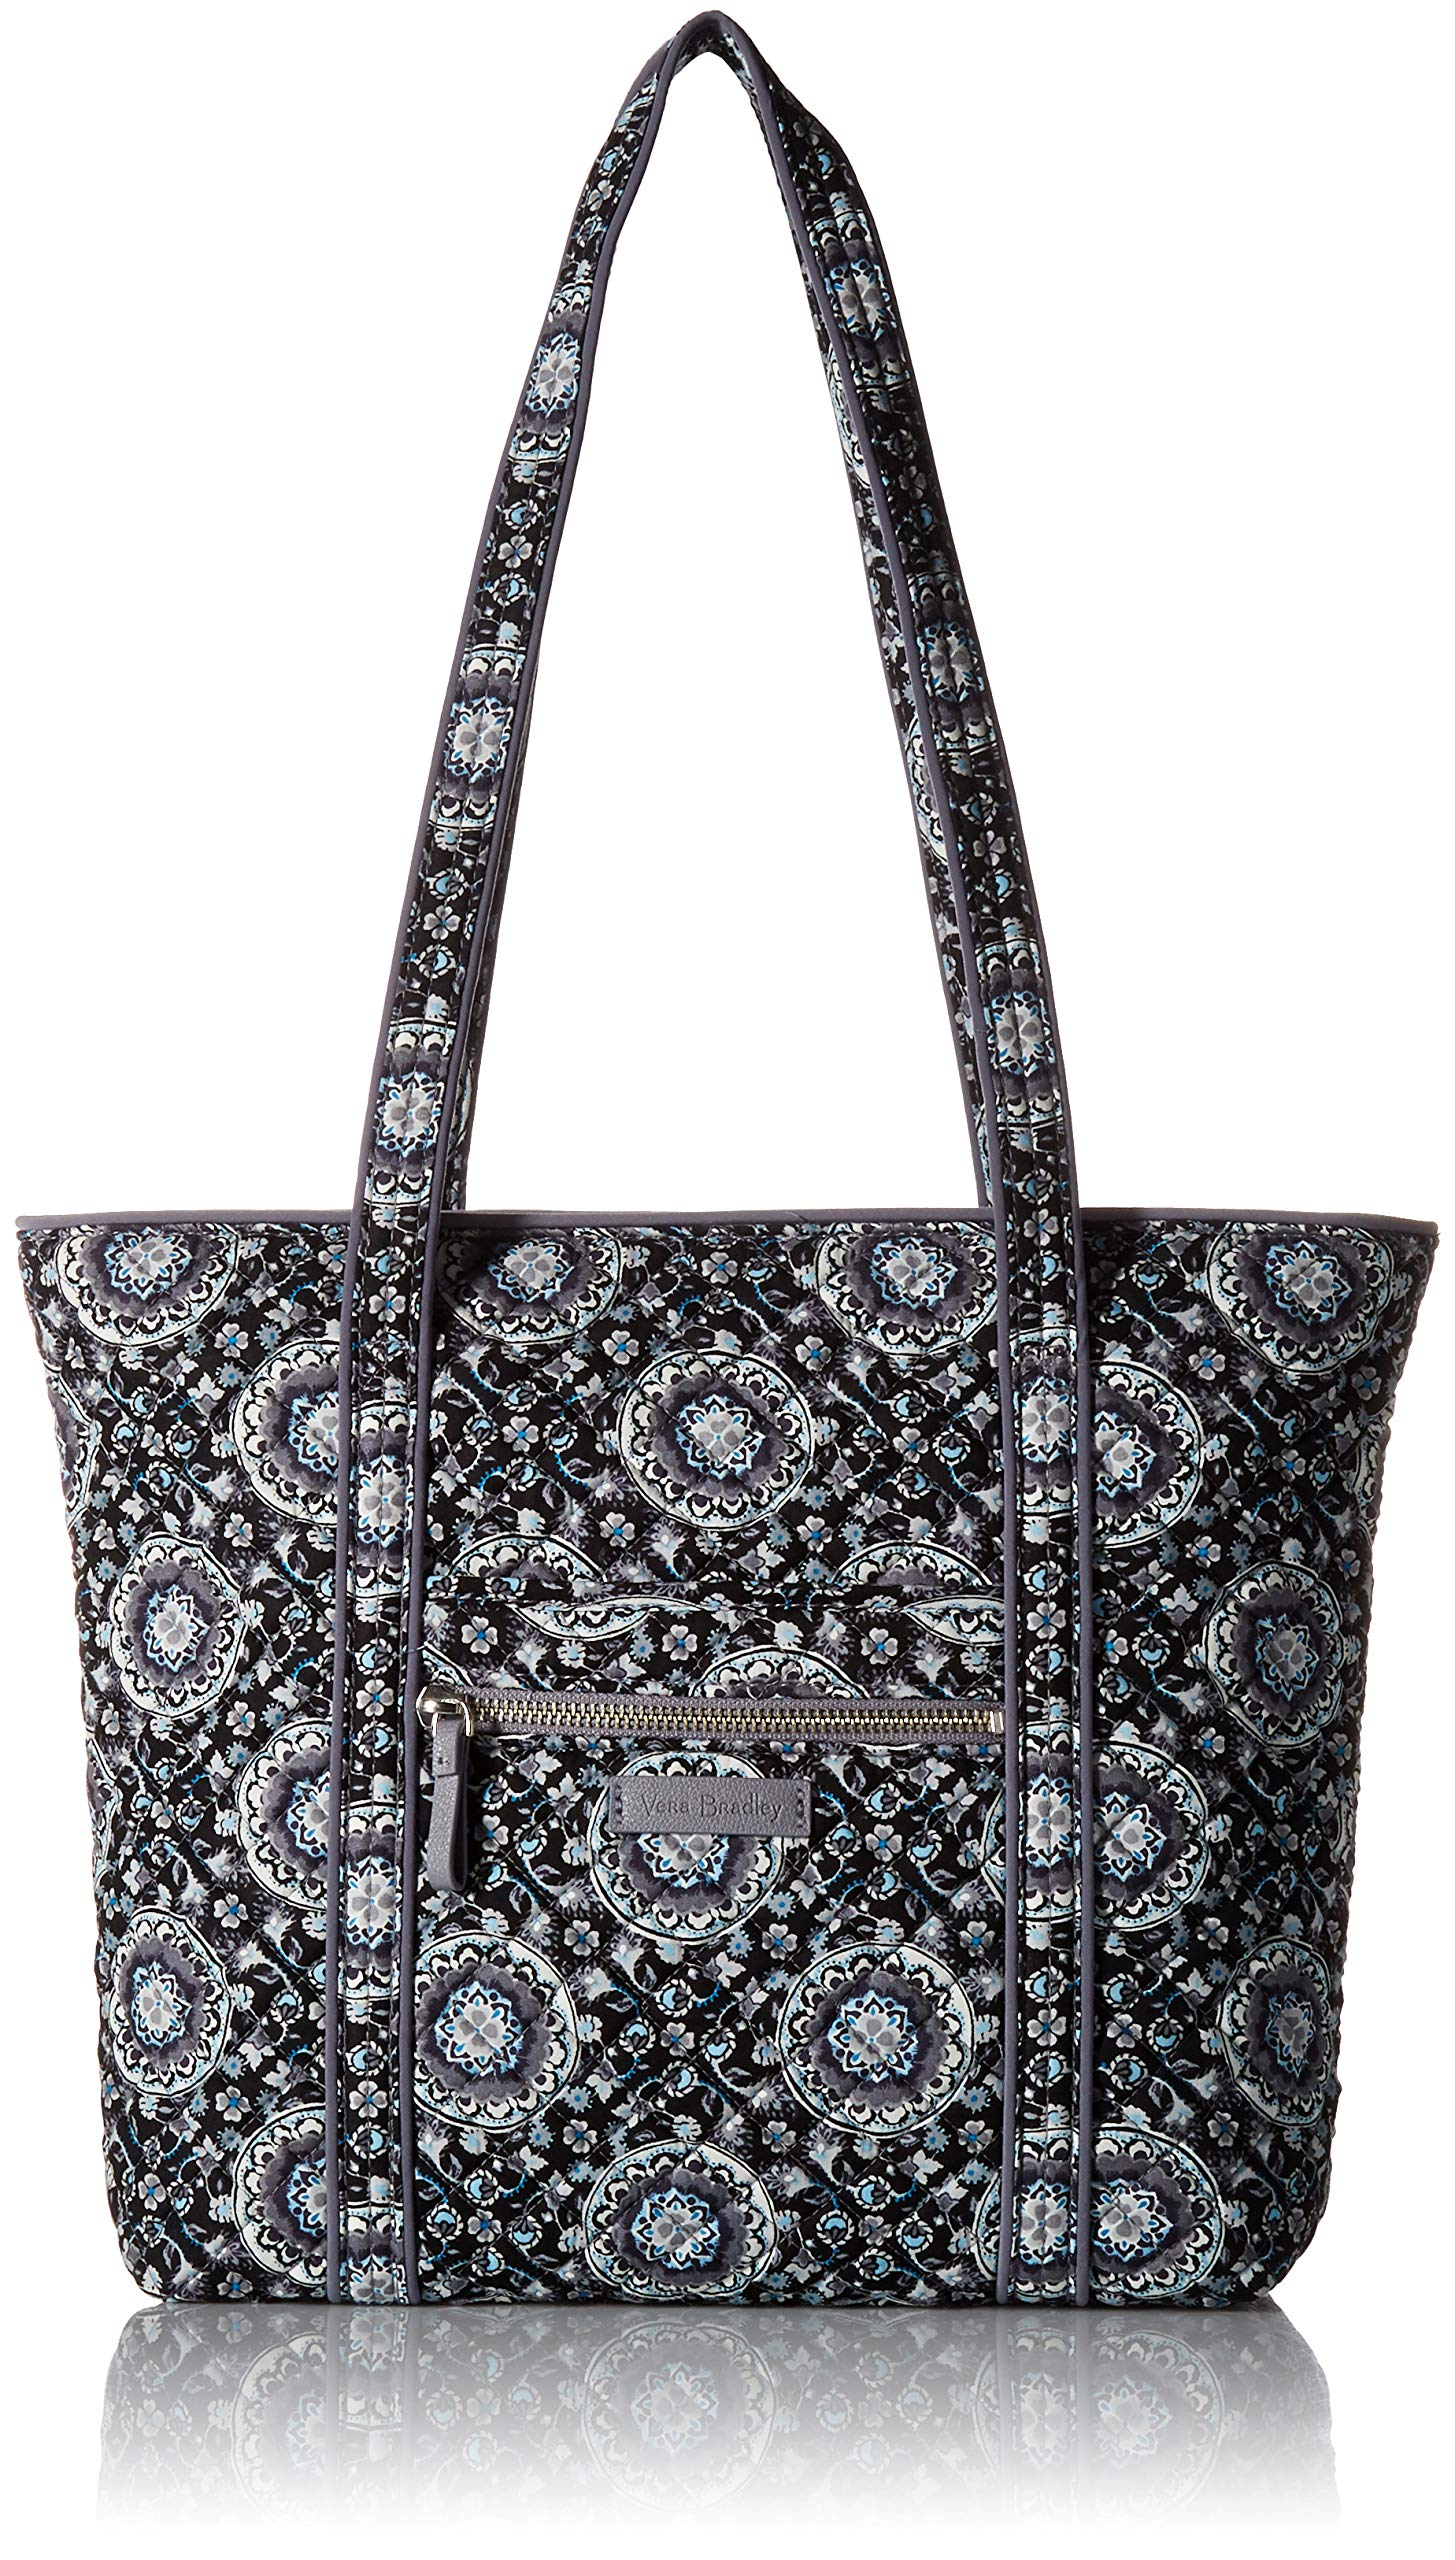 Vera Bradley Iconic Small Vera Tote, Signature Cotton, charcoal medallion